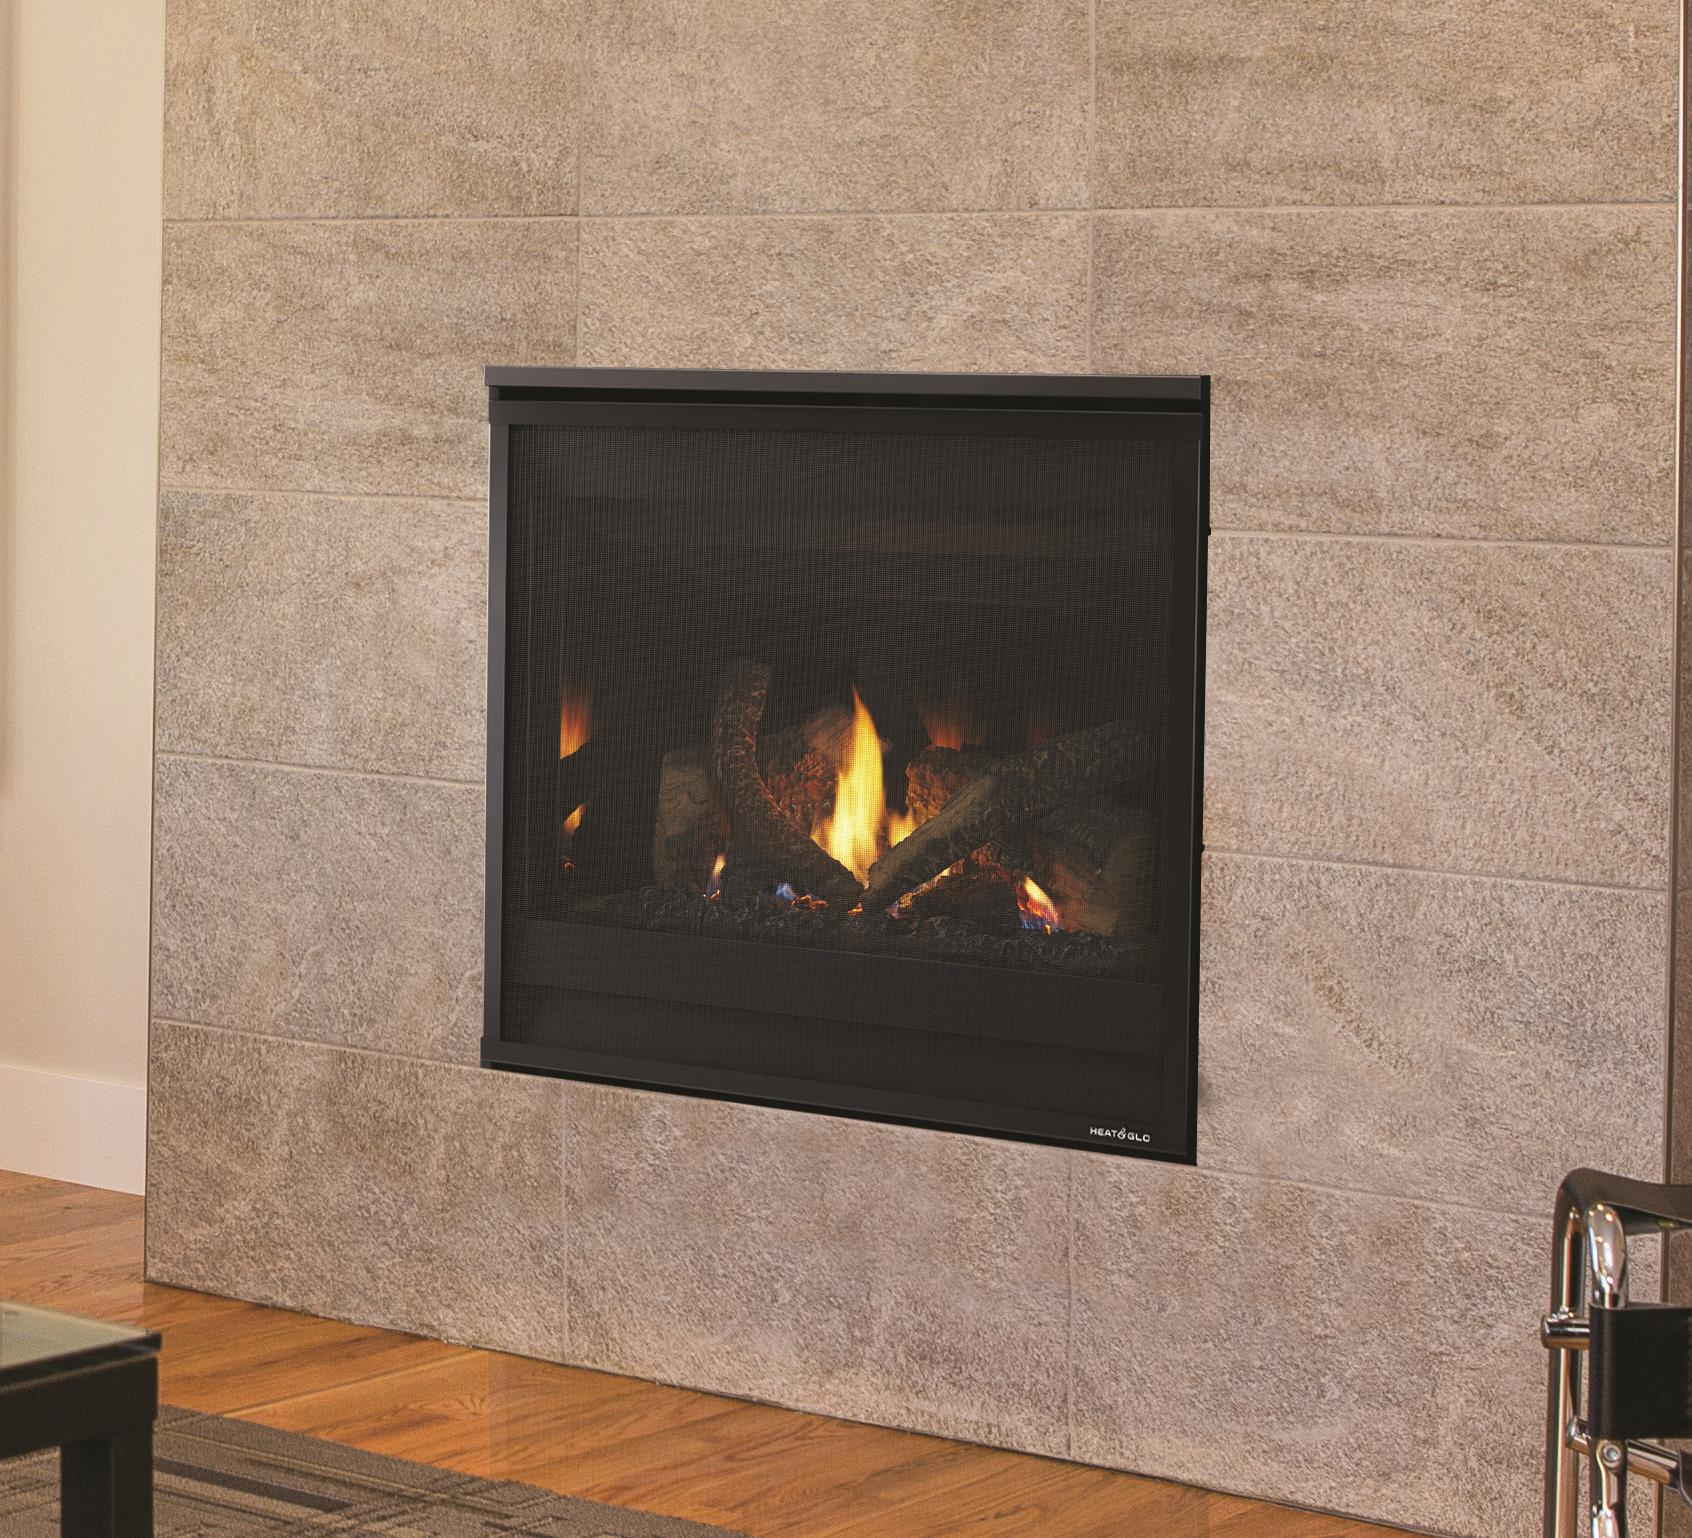 18 Fireplace Heat N Glo The Fireplace Debate Traditional Fireplaces On Sale About Us Just